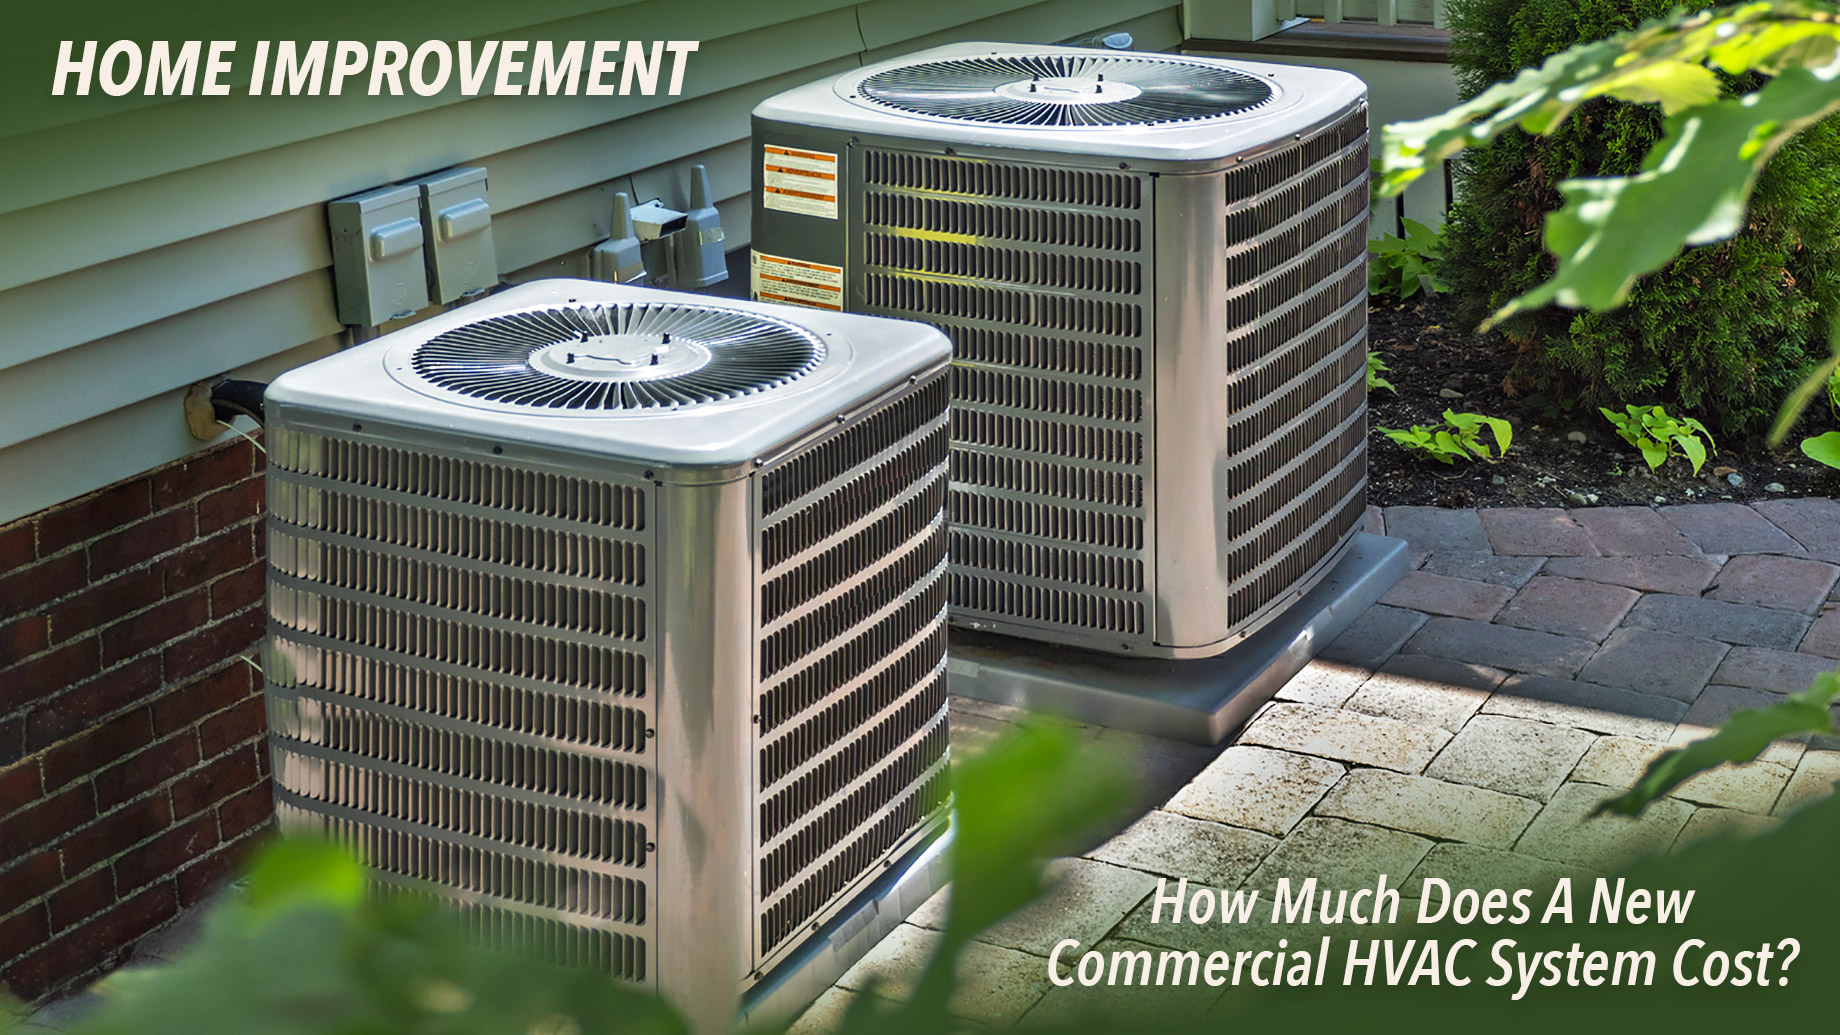 Home Improvement - How Much Does A New Commercial HVAC System Cost?